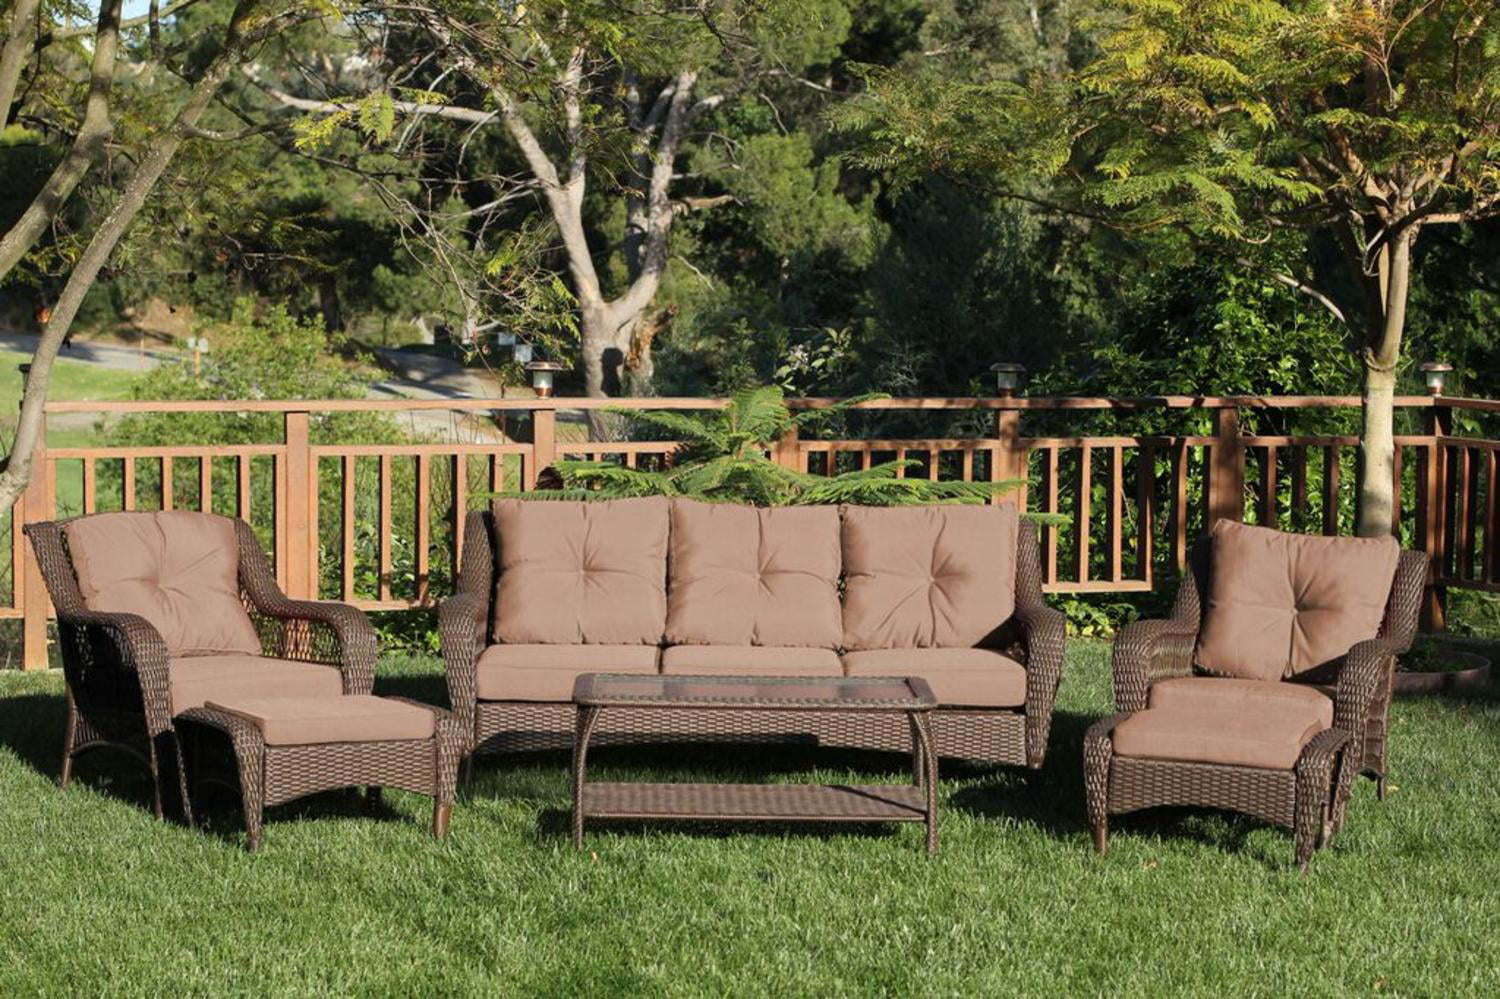 Outdoor Patio Furniture Cushioned PC Rattan Wicker Aluminum Frame - Wicker patio furniture sets